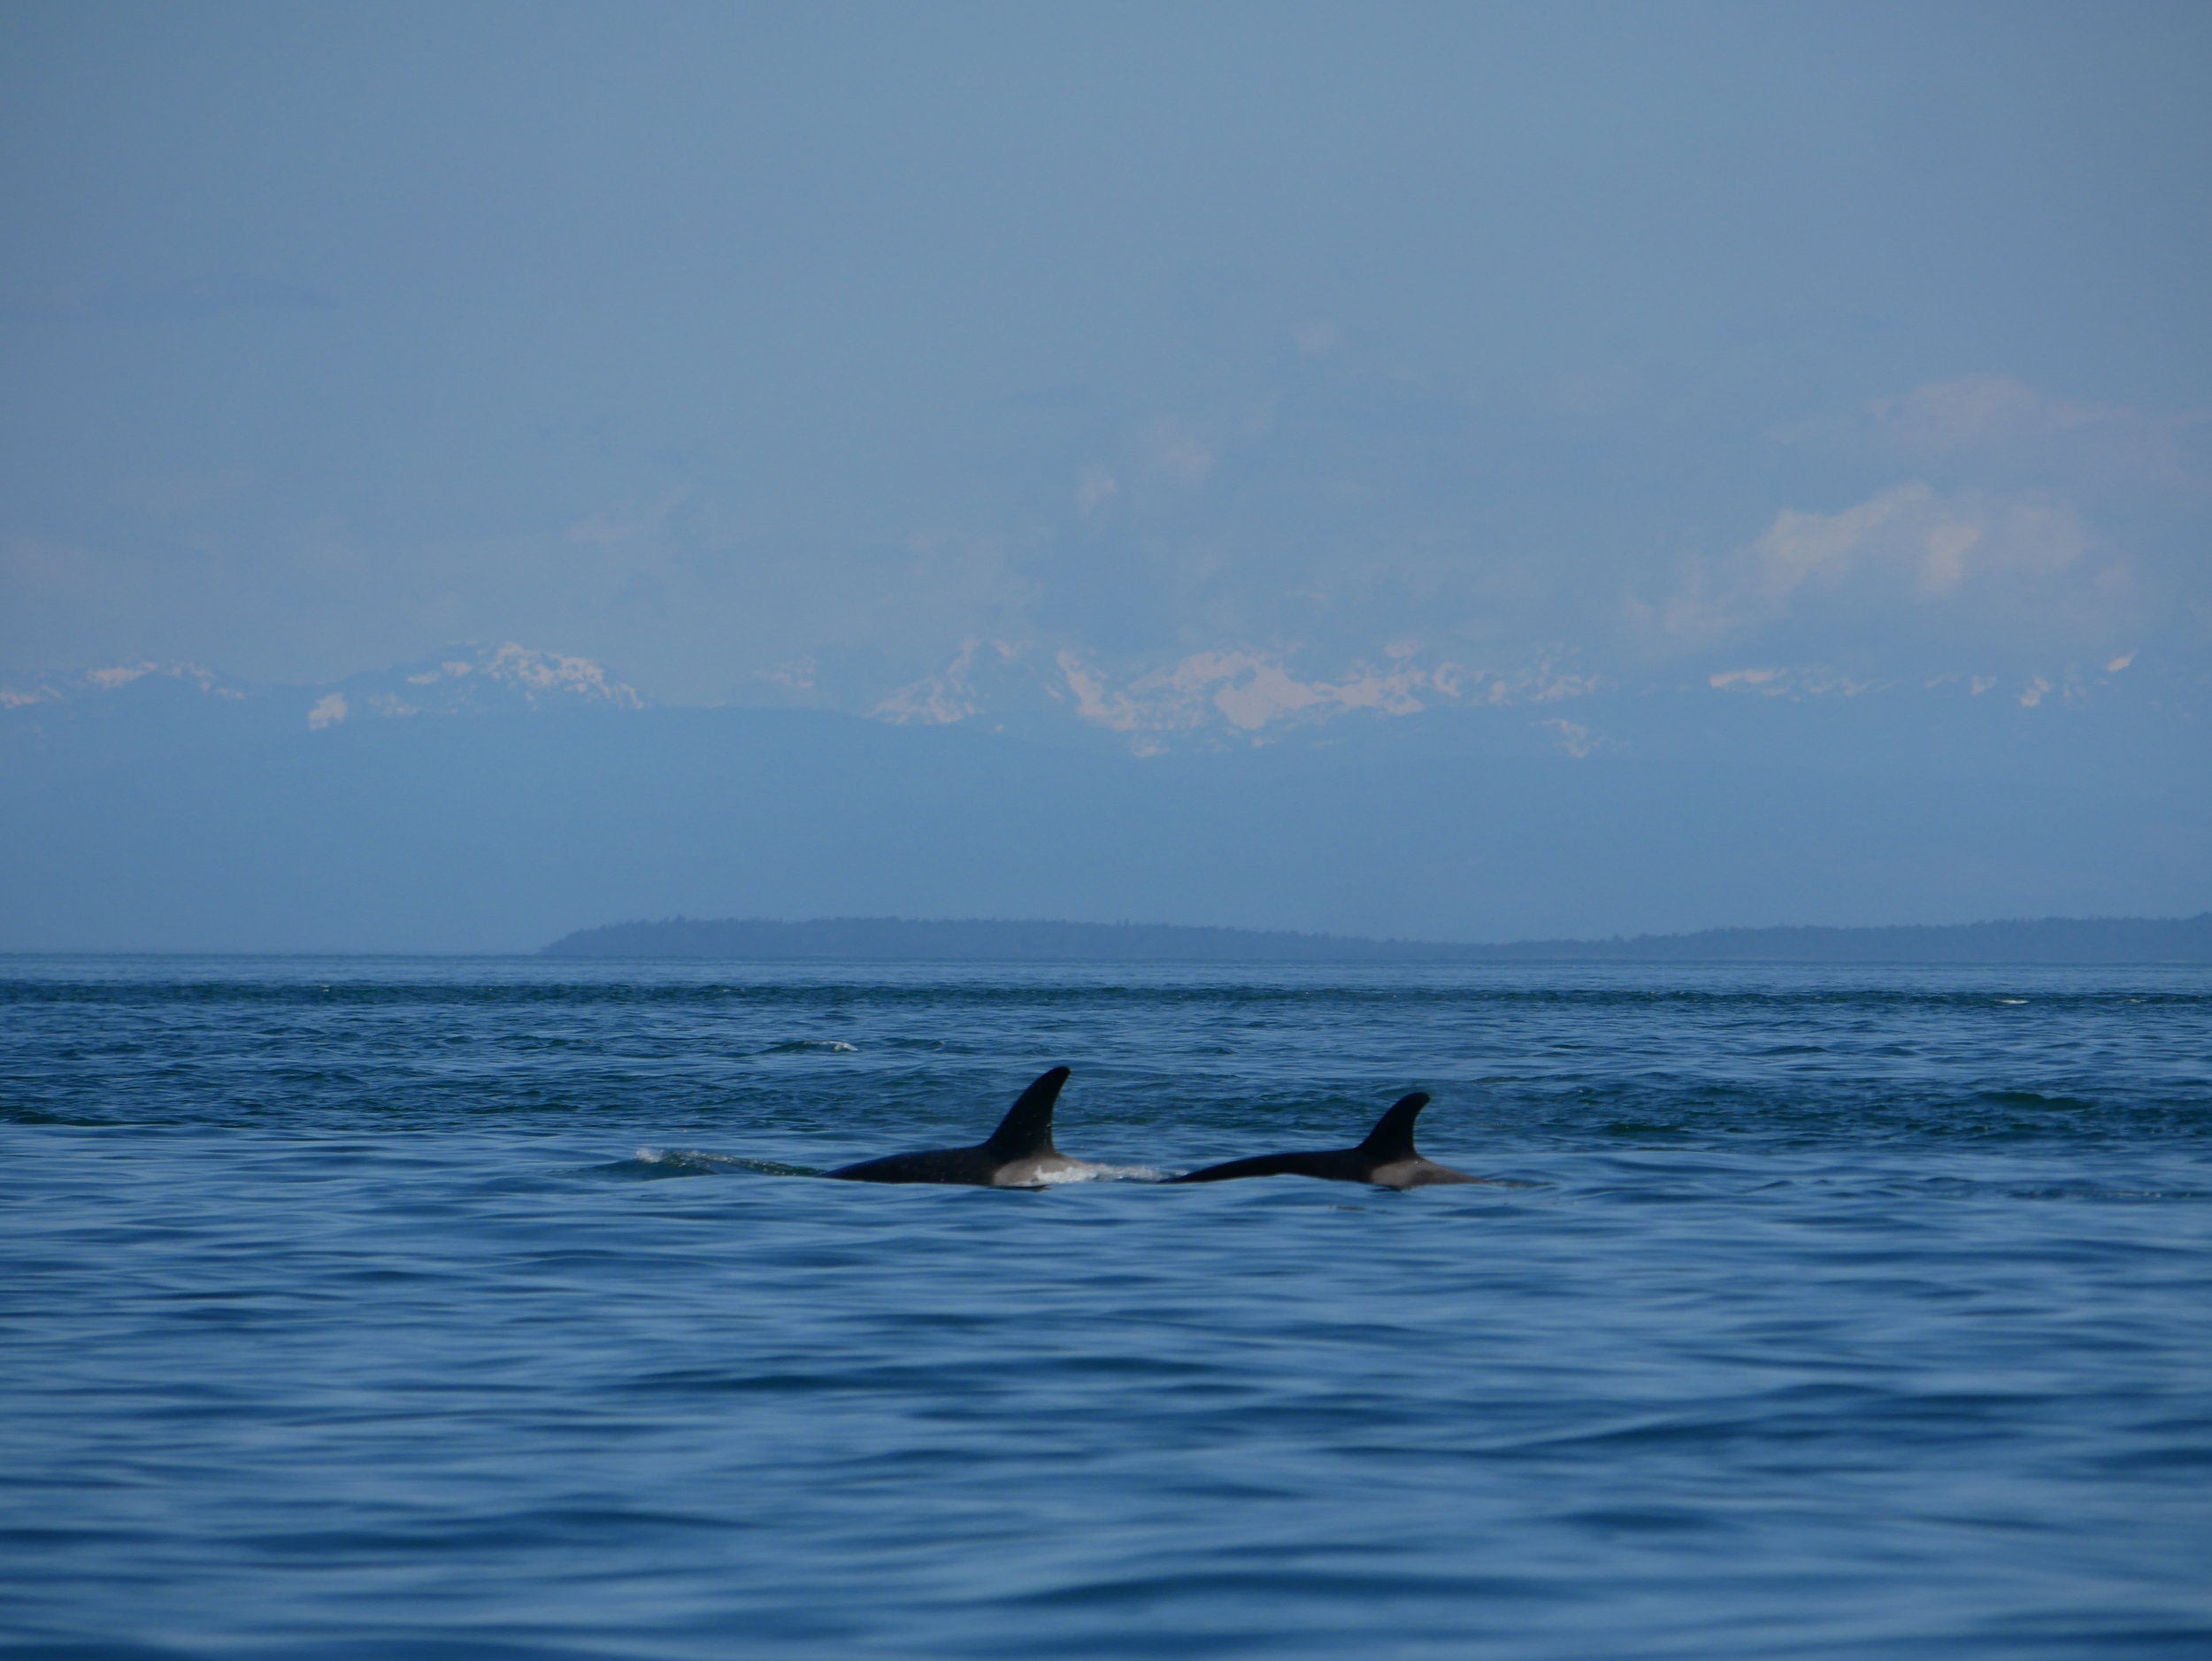 Surfacing together. Photo by Val Watson